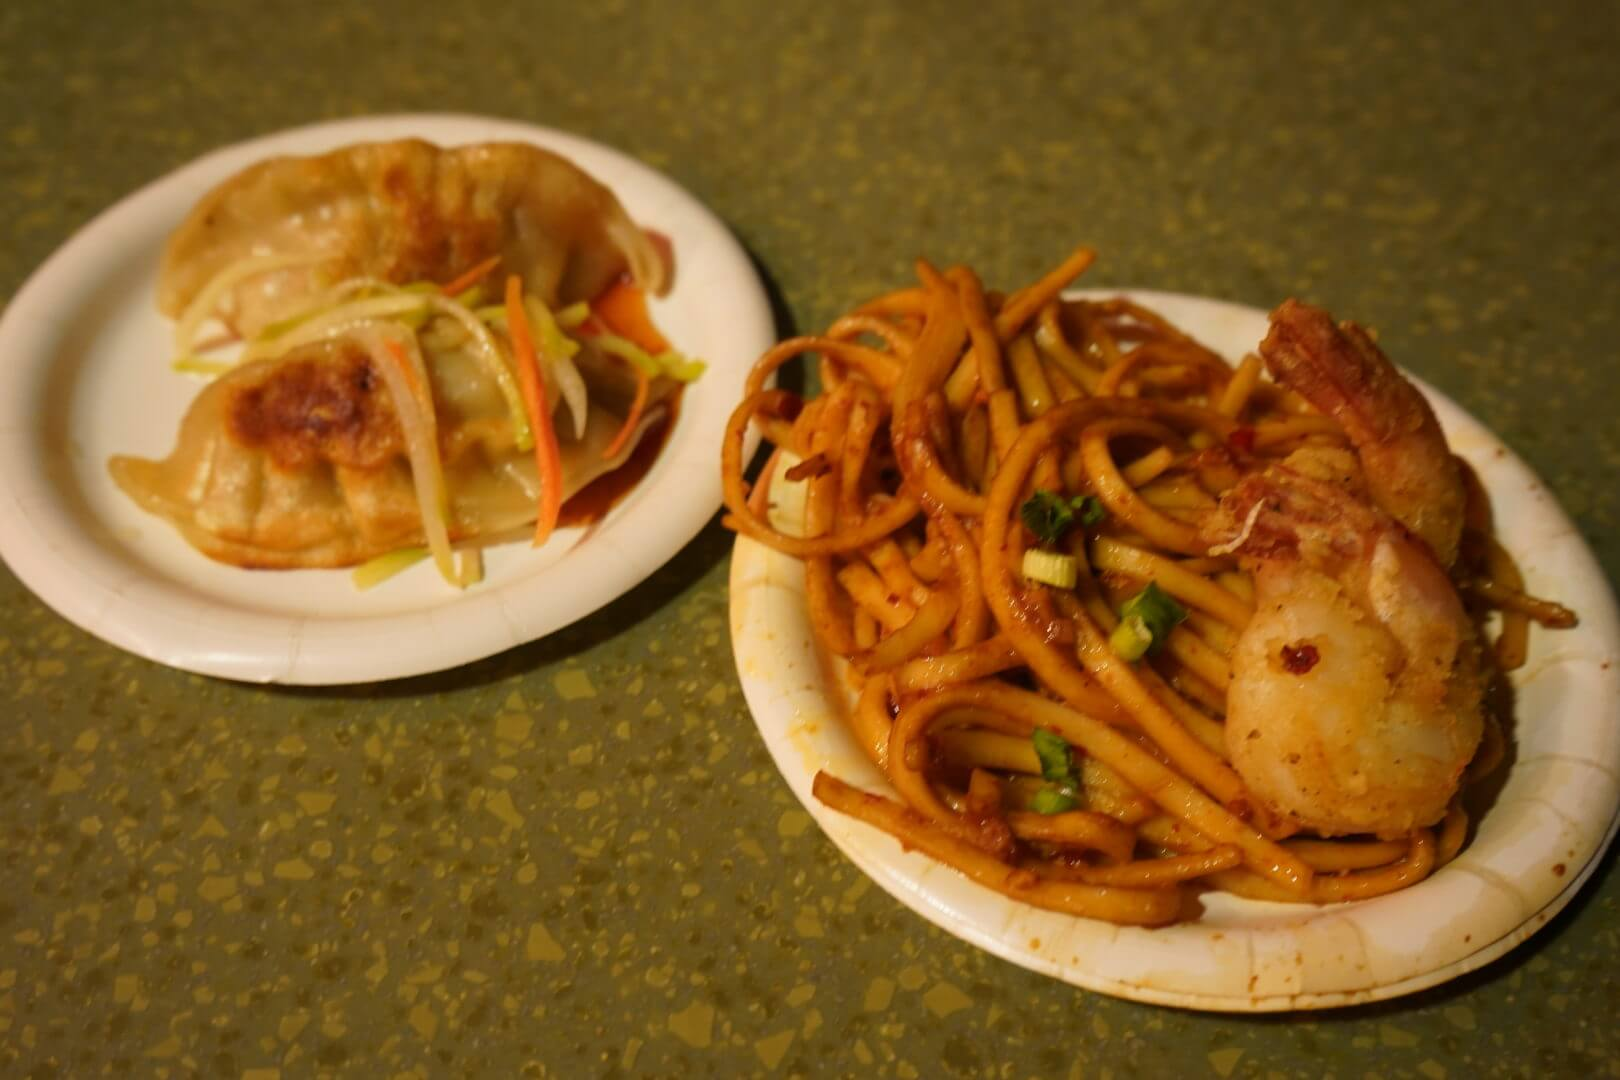 Black Pepper Shrimp with Garlic Noodles and Chicken Dumplings with Chinese Slaw (China) - Epcot Food & Wine